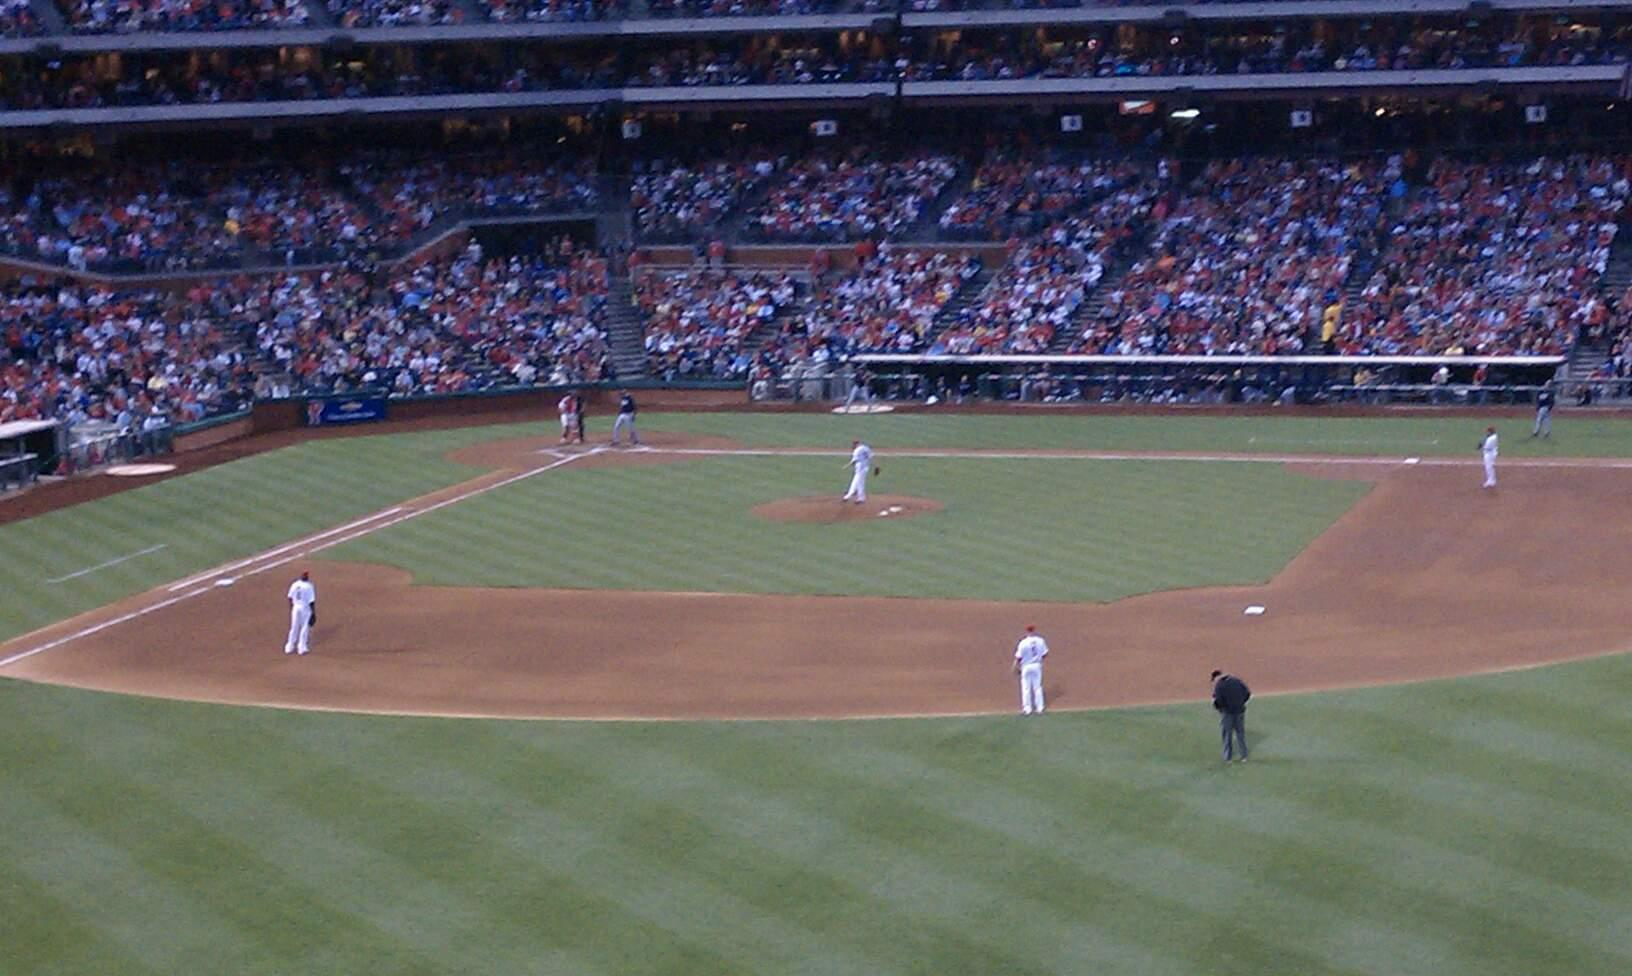 Citizens Bank Park Section 202 Row 1